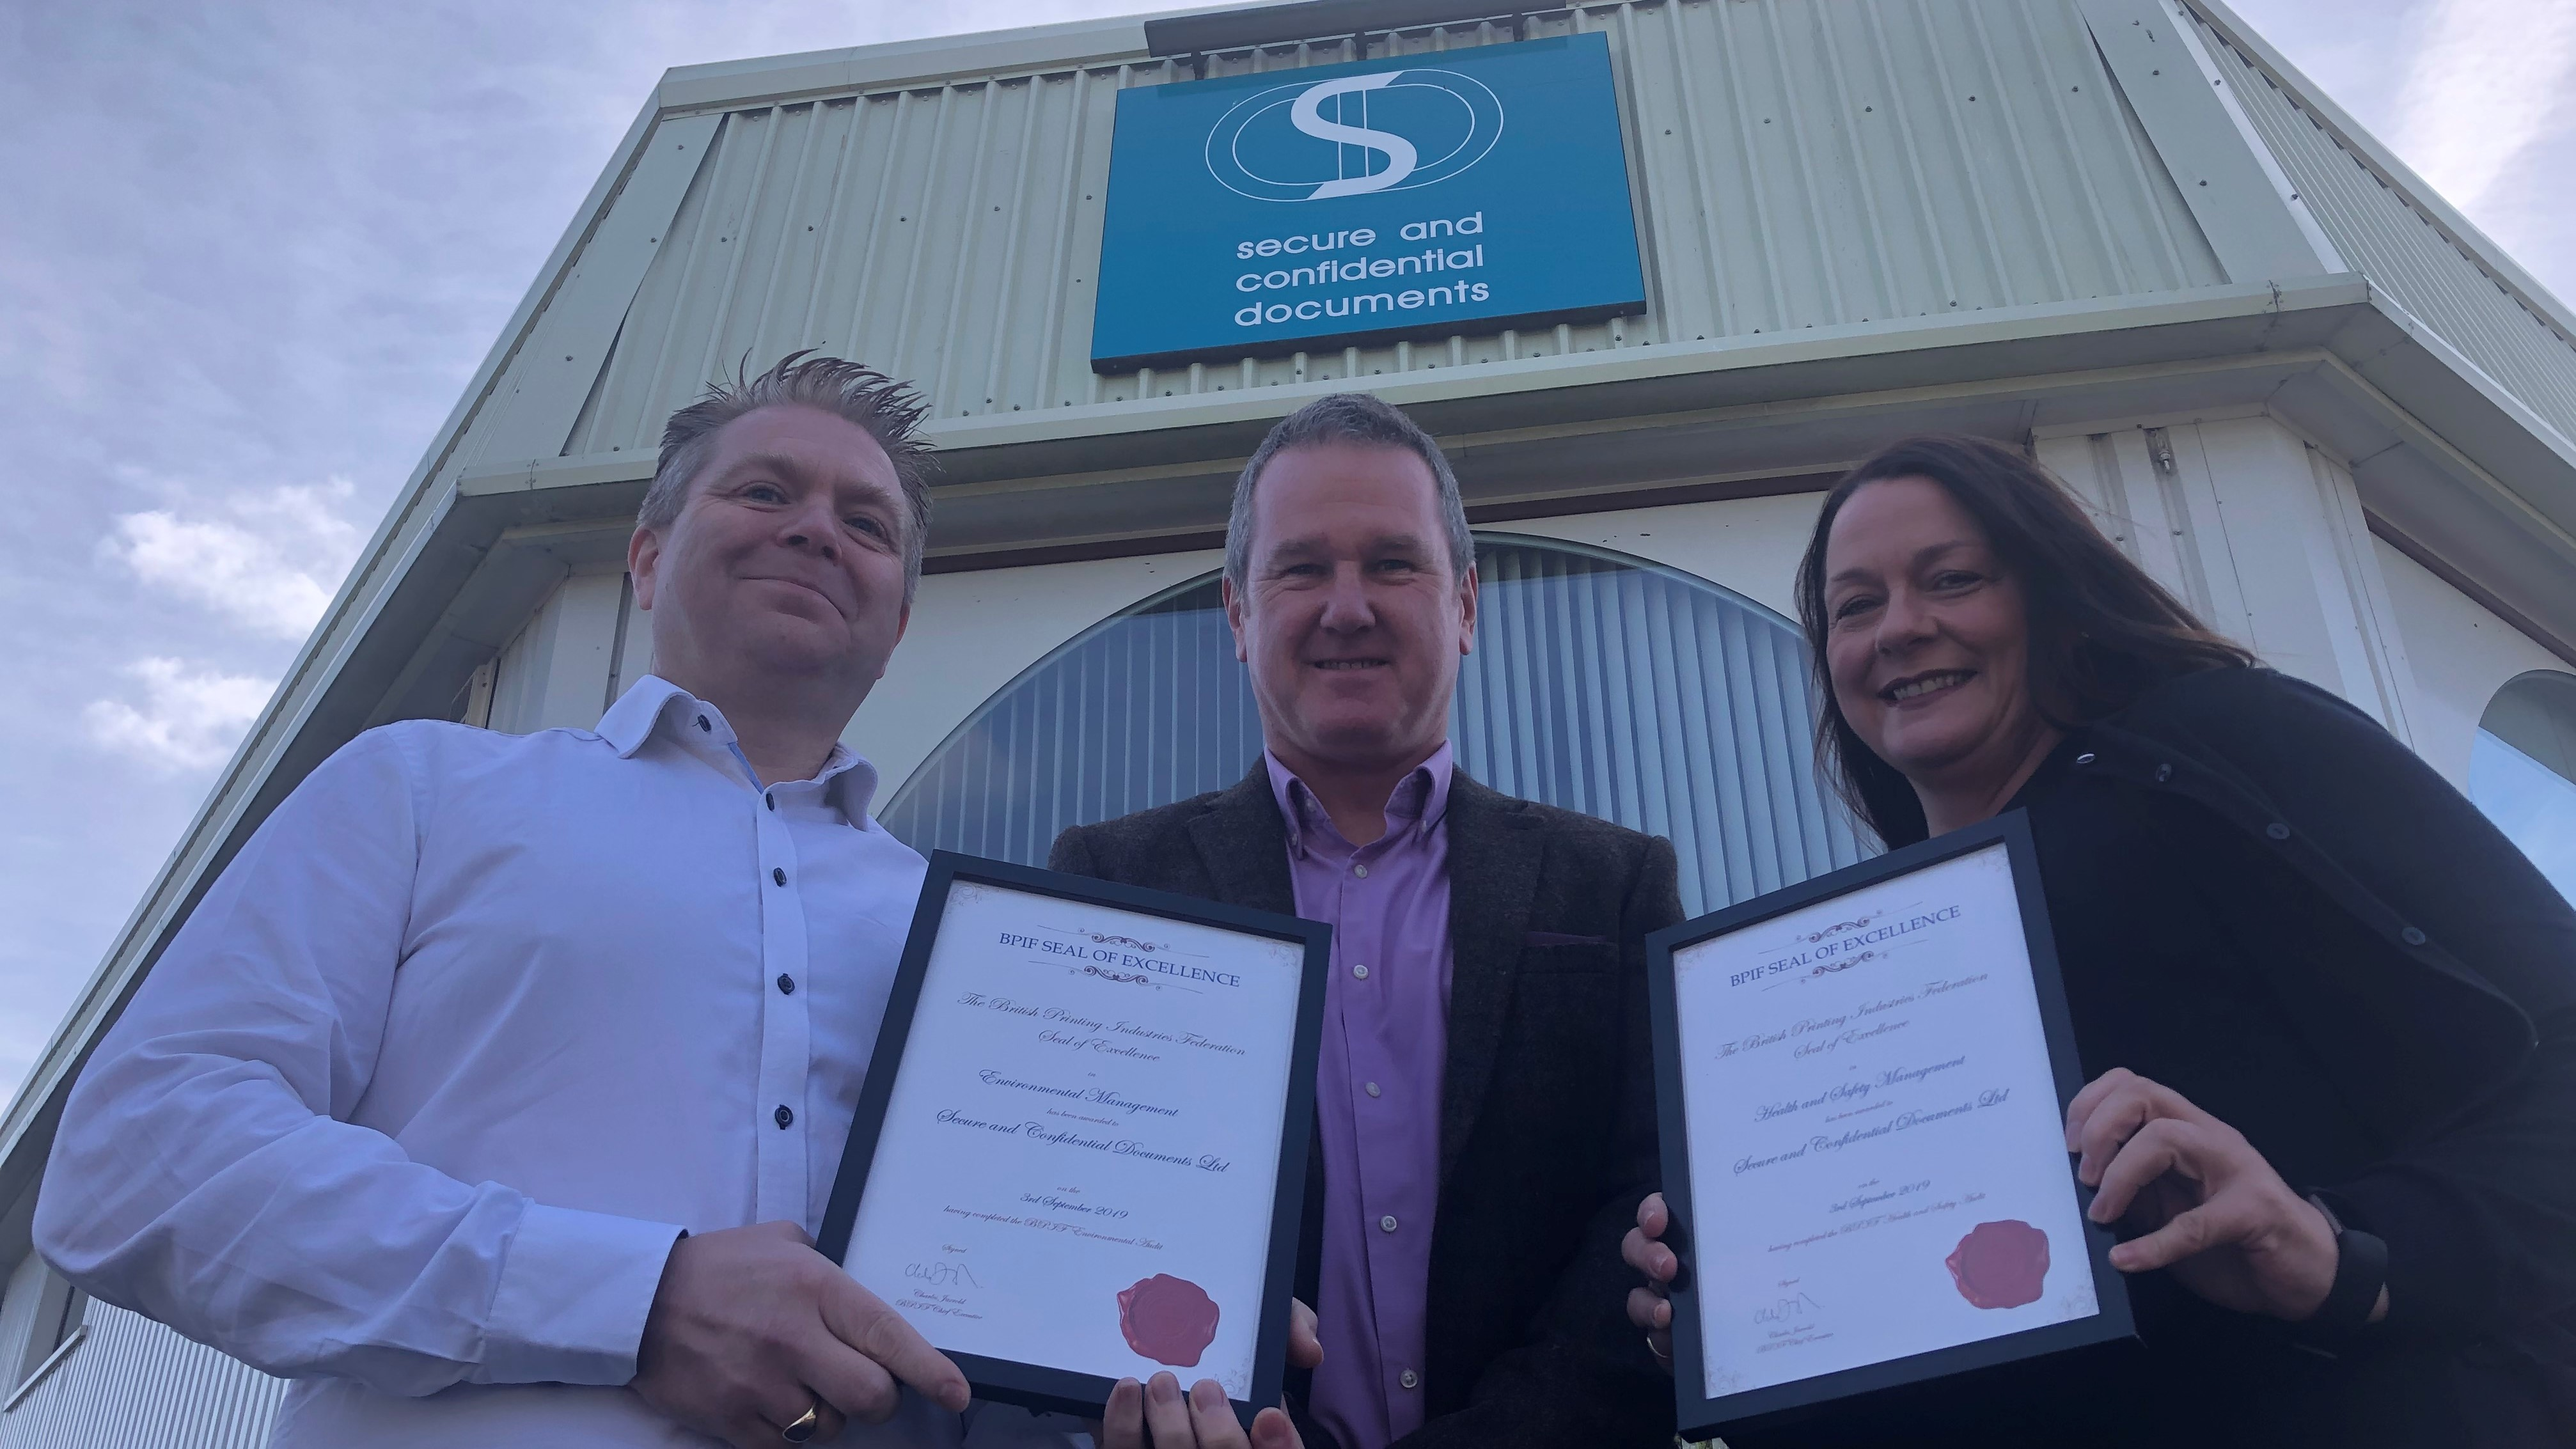 Double Seal of Excellence for Secure and Confidential Documents Ltd